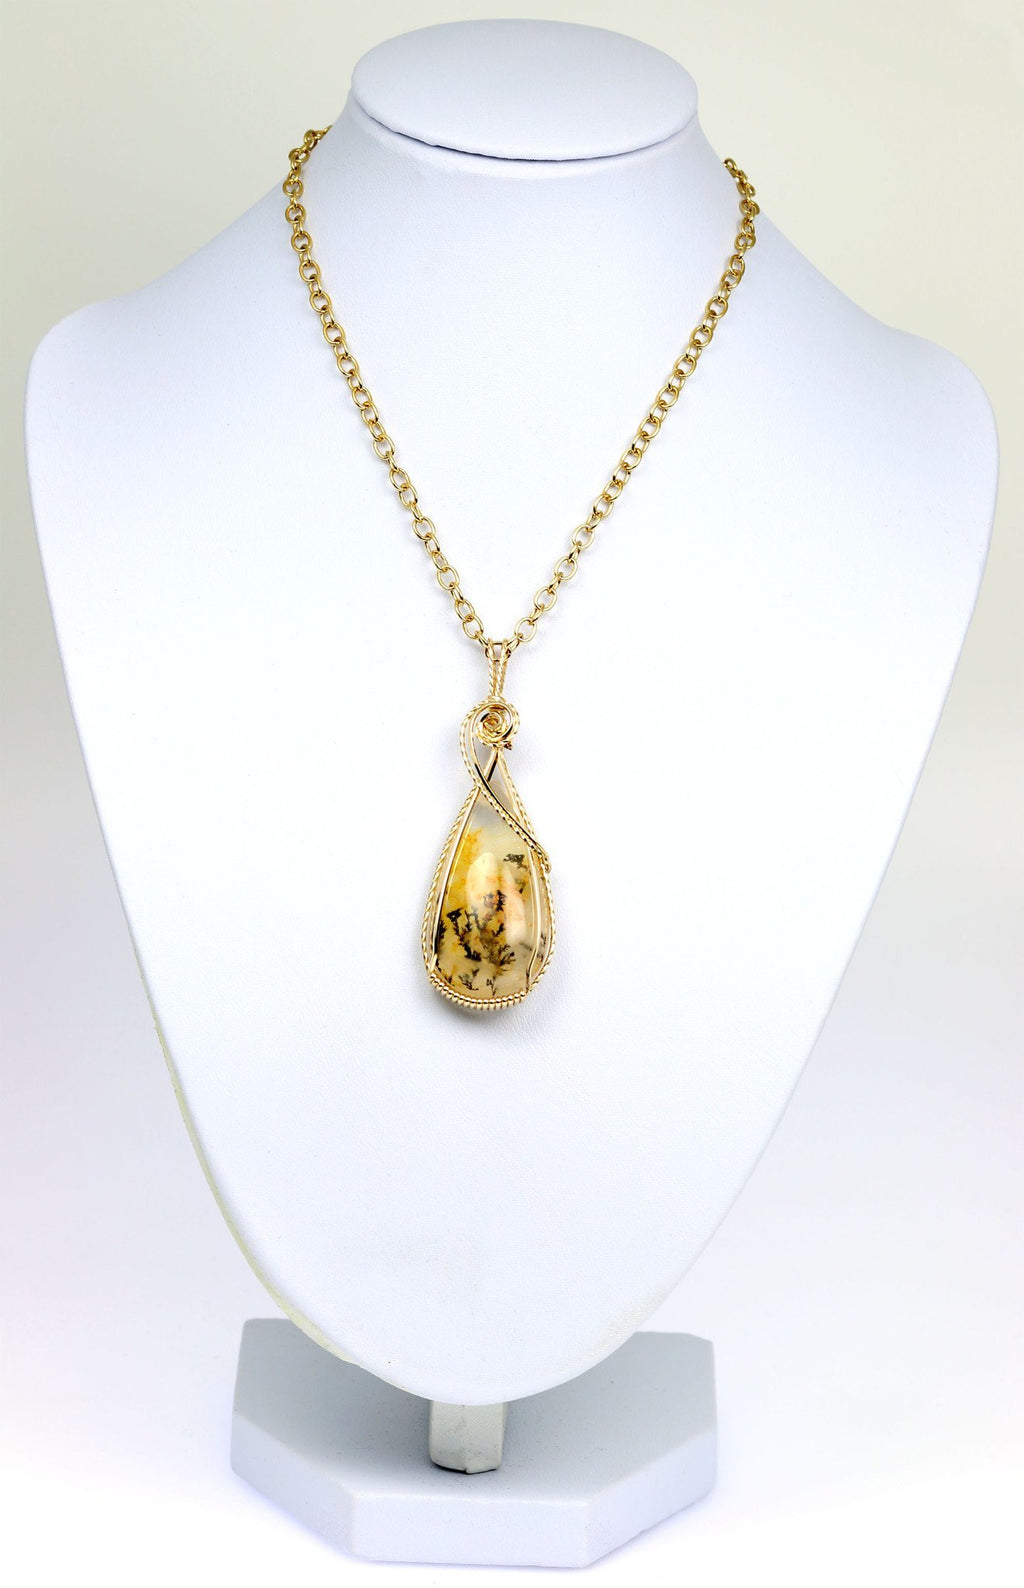 62.5 CT Dendritic Quartz 14K Gold-filled Wire Wrapped Pendant - johnsbrana - 3